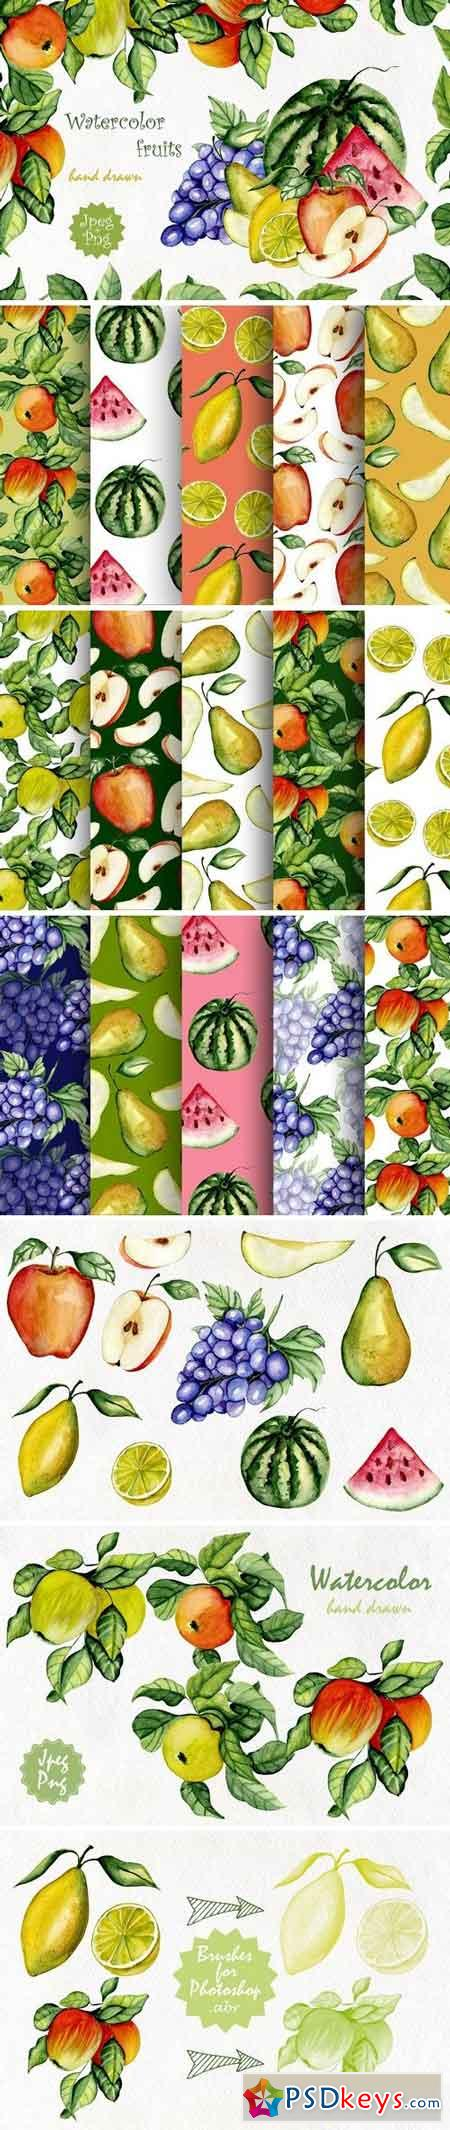 Watercolor fruits 542760